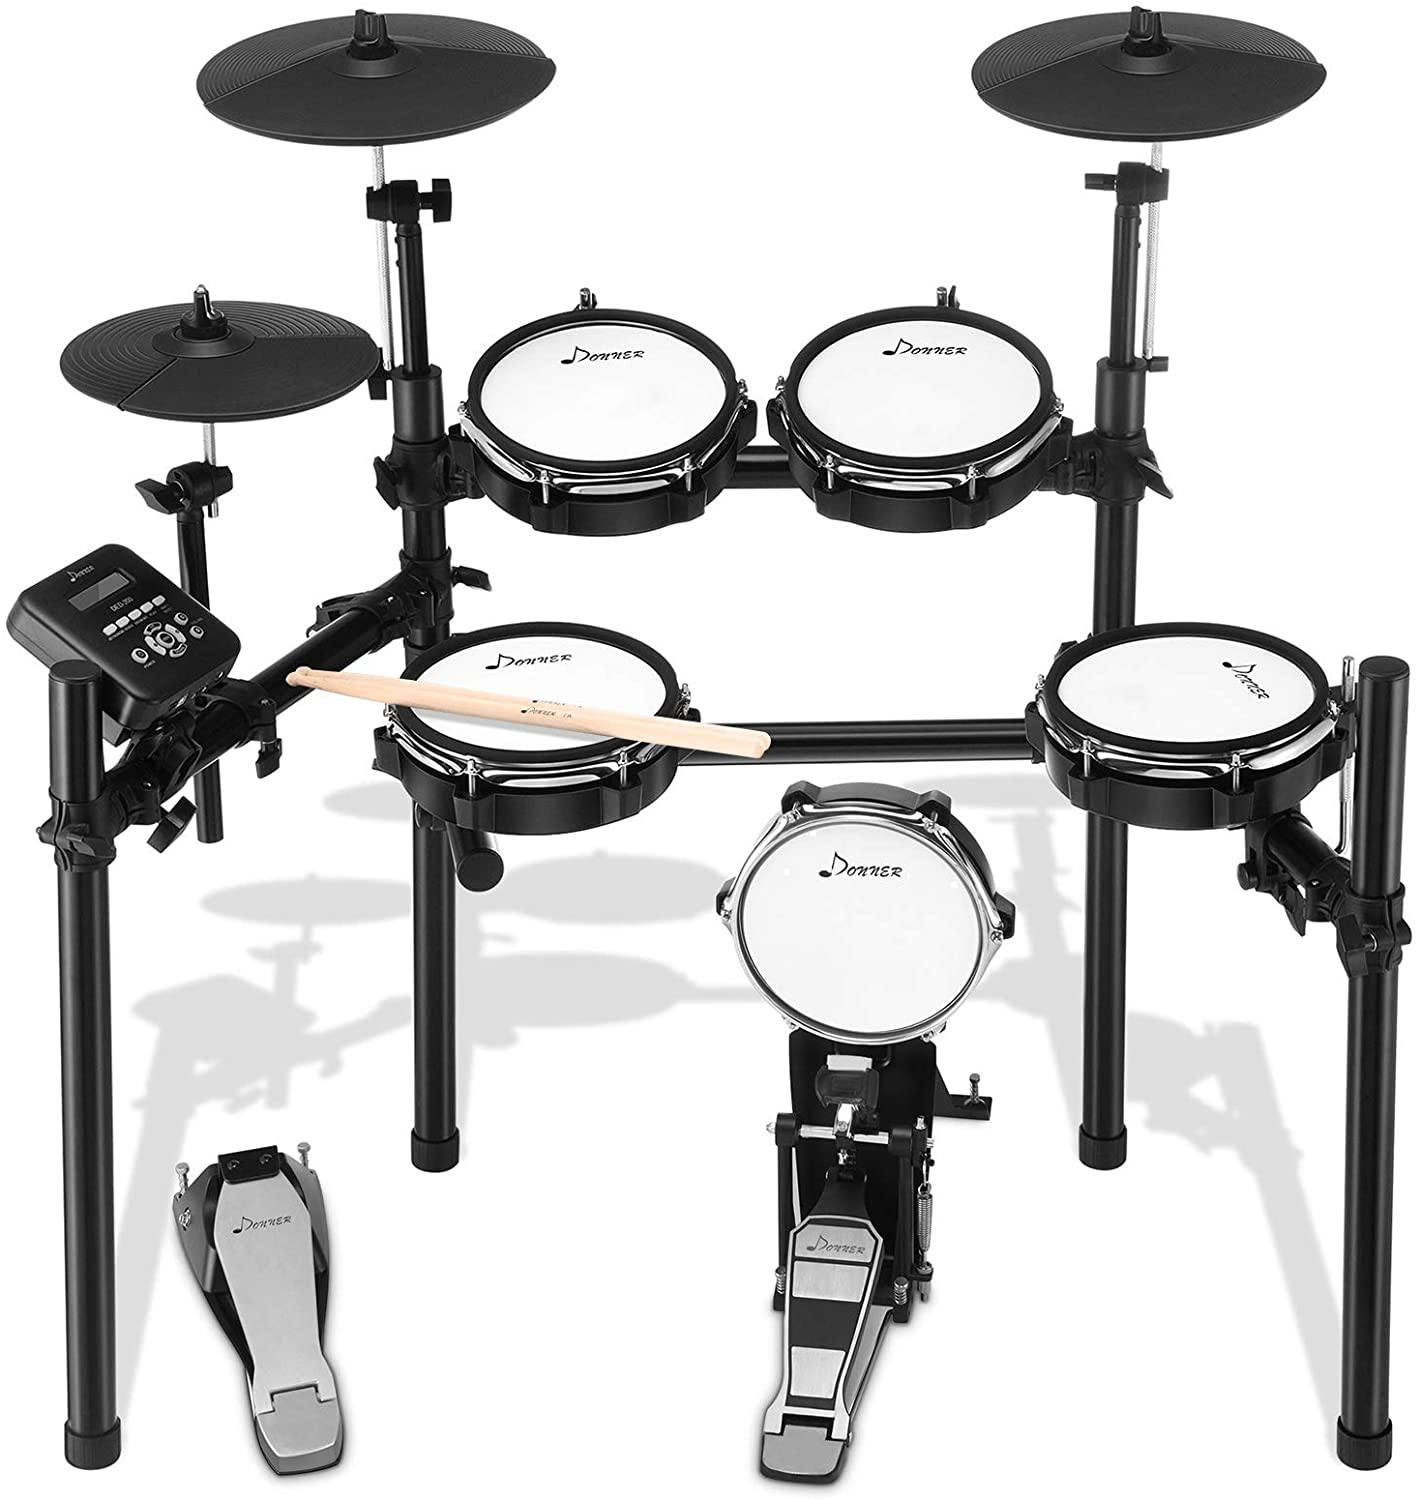 Donner DED-200 Electric Drum Set for Christmas Electronic Kit with 5 Drums 3 Cymbals, Electric Drum, Audio Line and Drum Stick